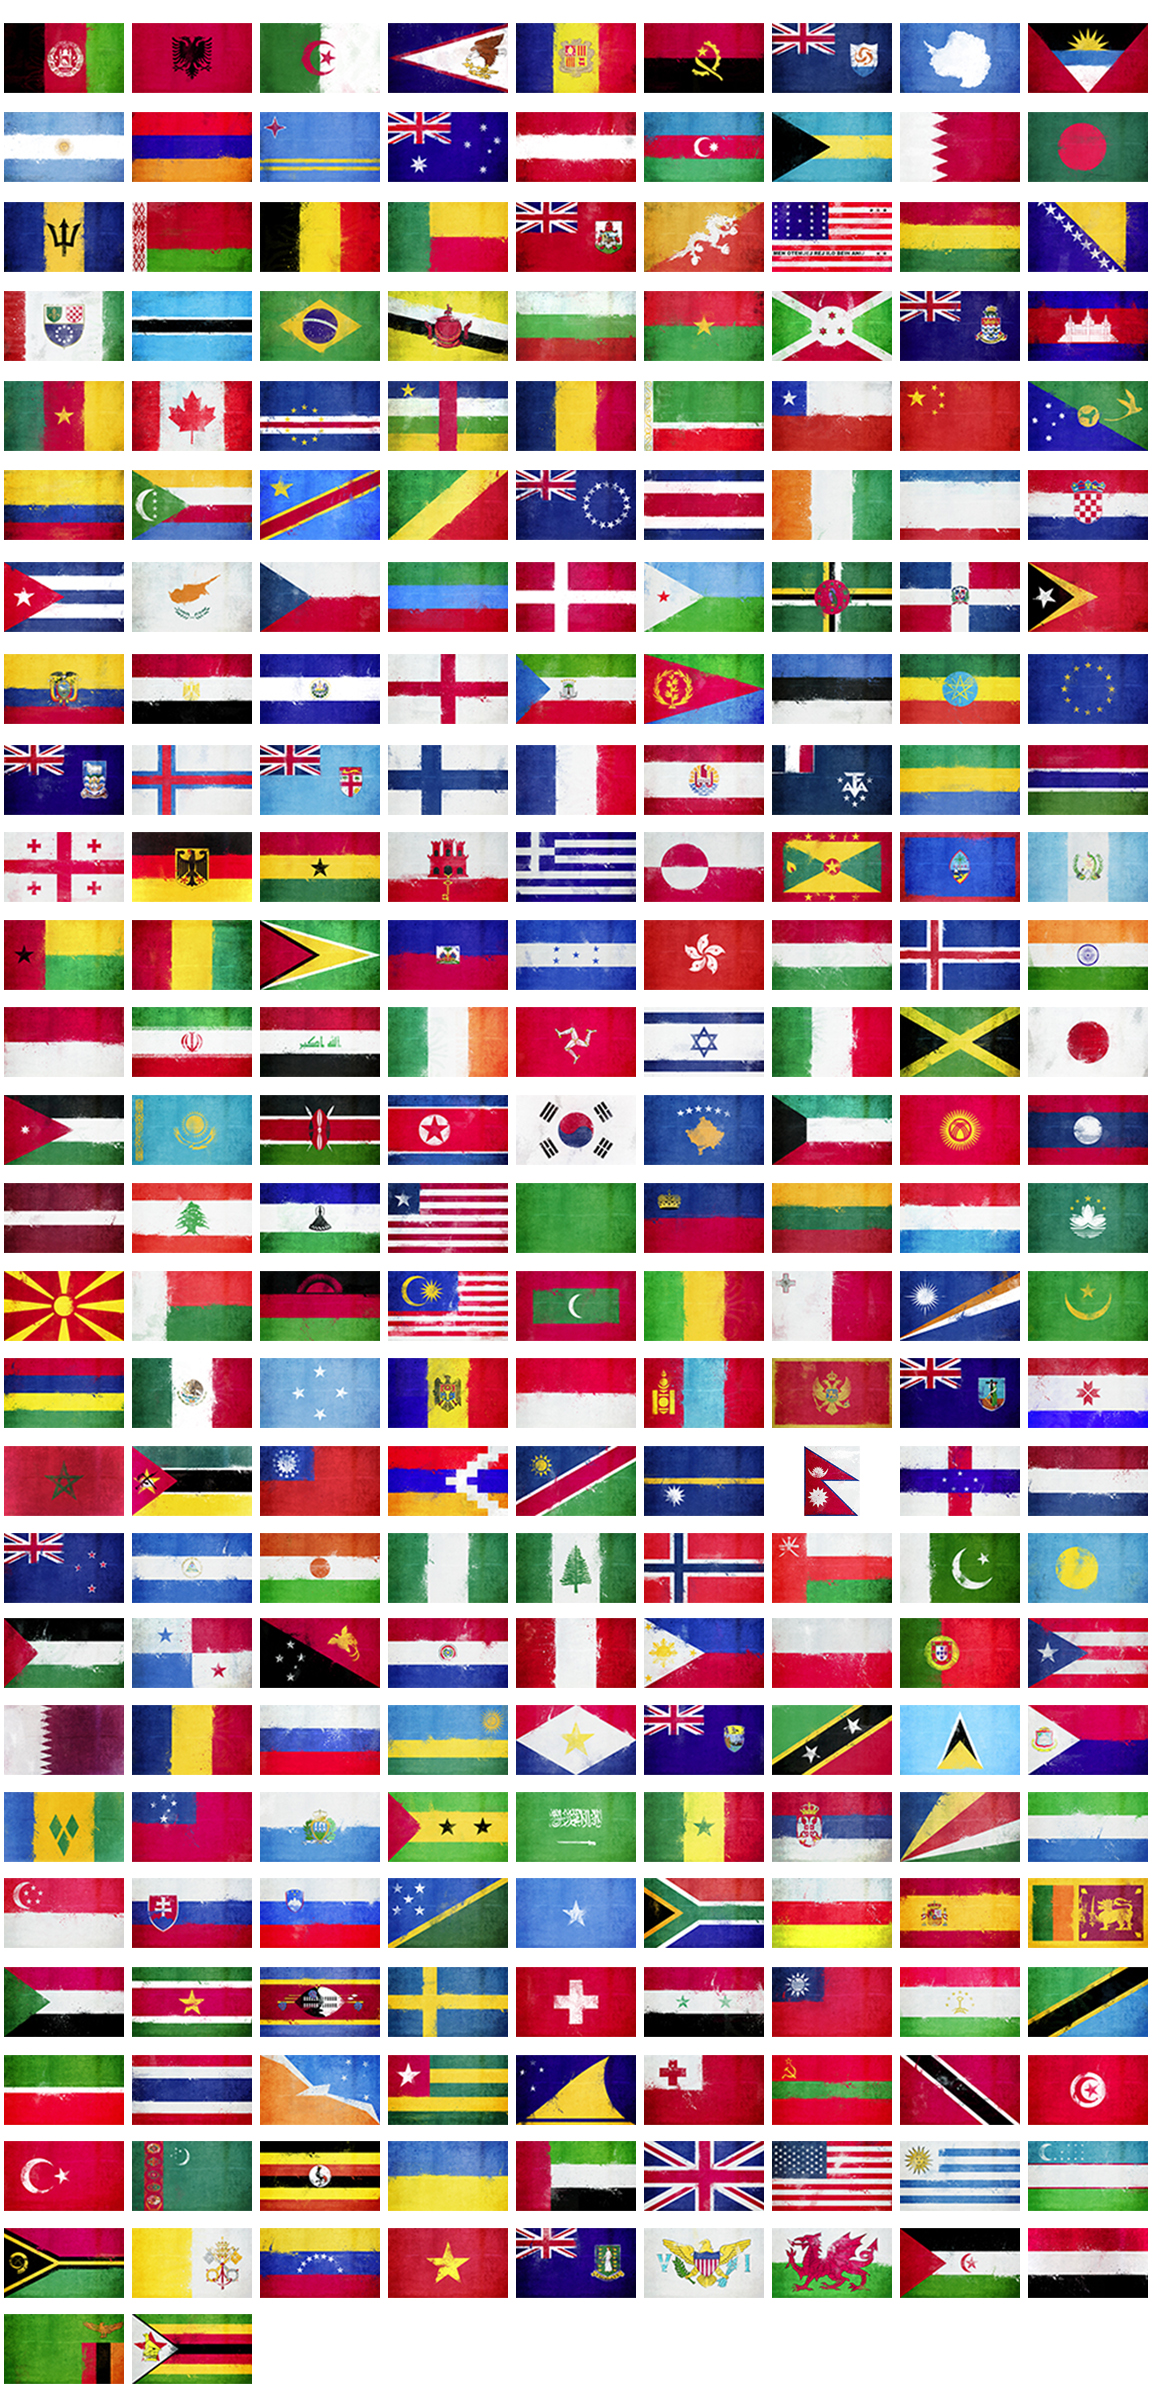 236 Grunge Flags example image 4